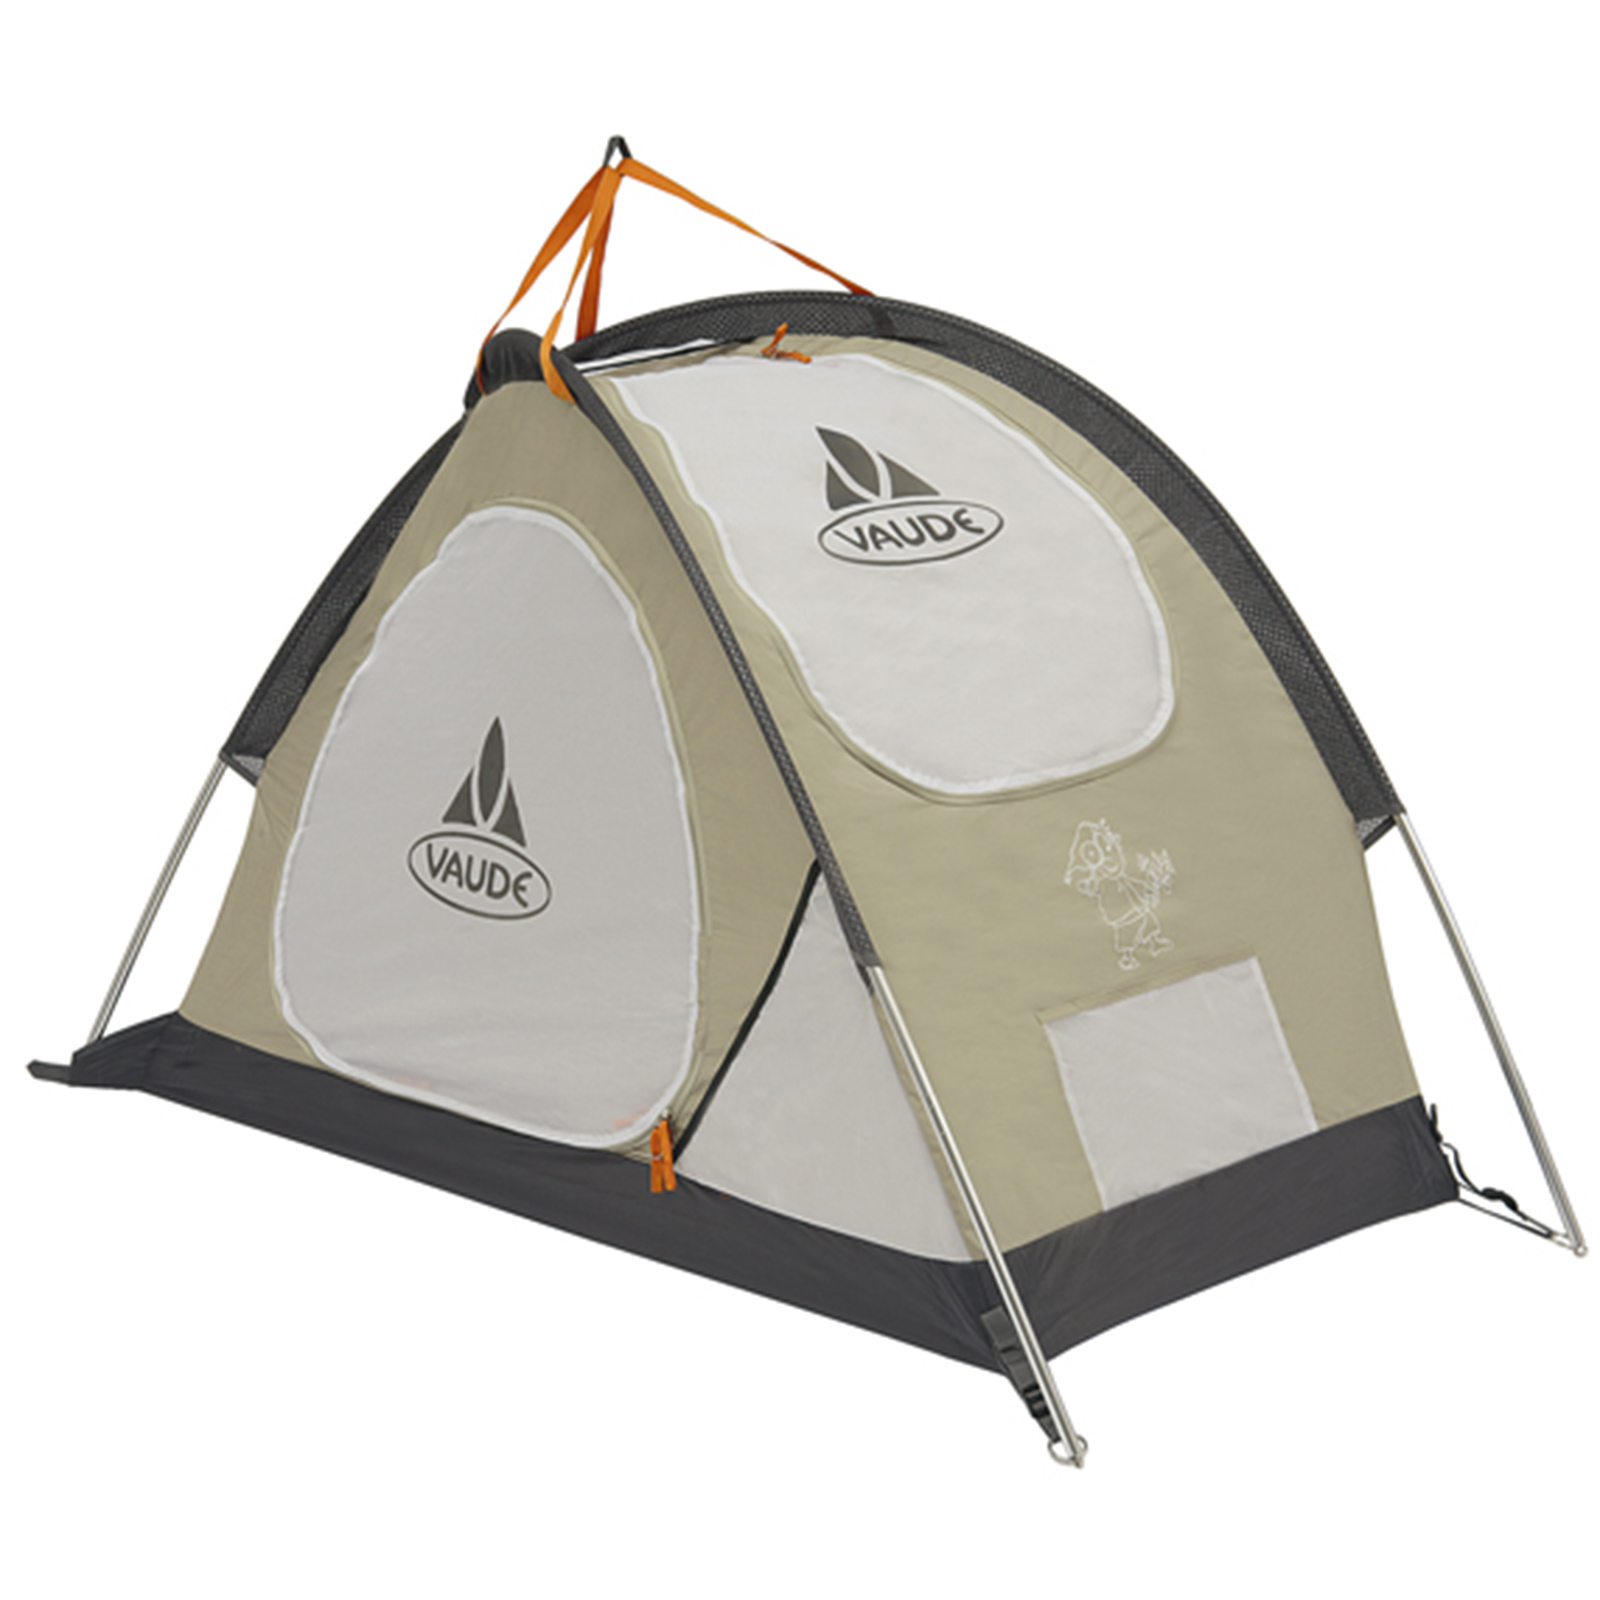 vaude baby tent babyzelt kinderzelt reisebett mod 2009 ebay. Black Bedroom Furniture Sets. Home Design Ideas